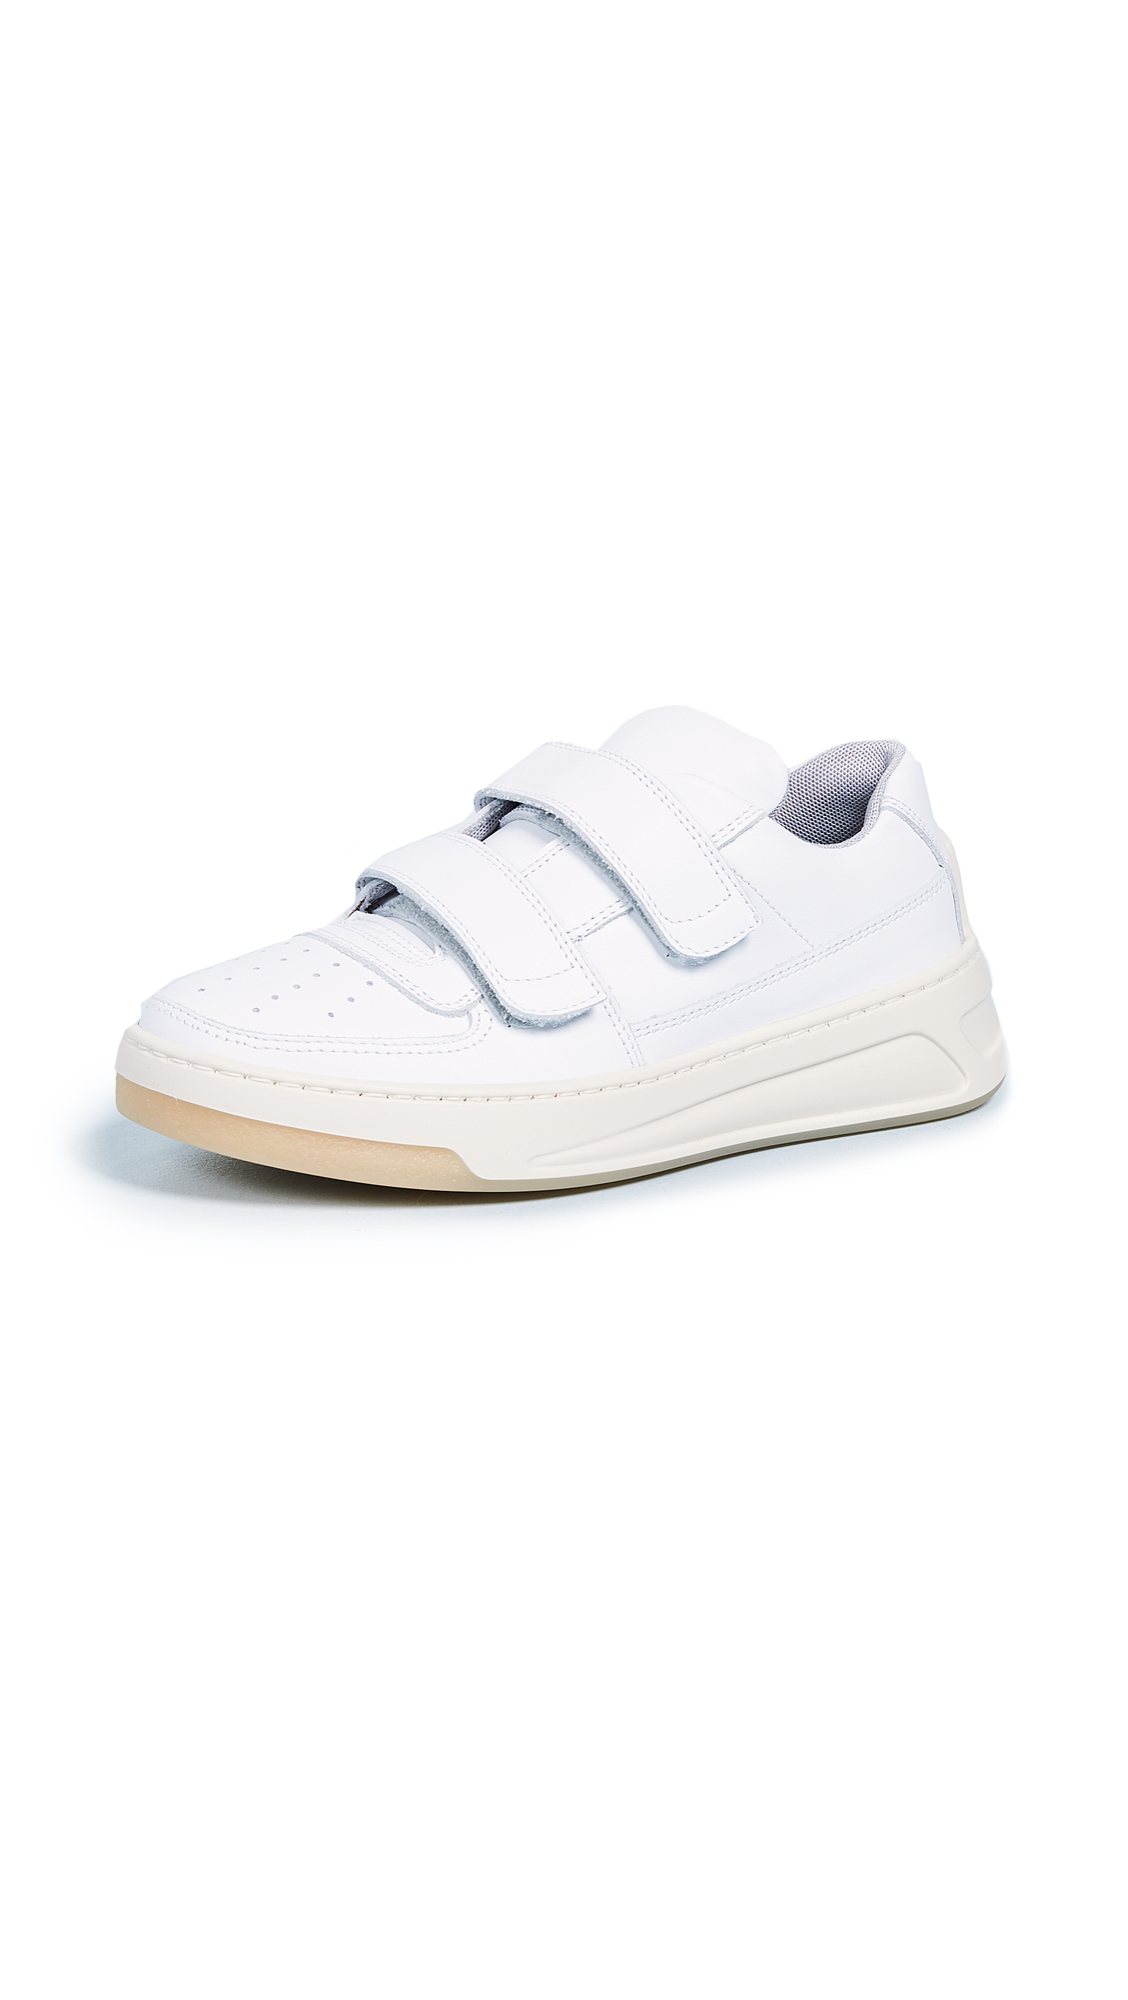 Acne Studios Steffey Sneakers - White